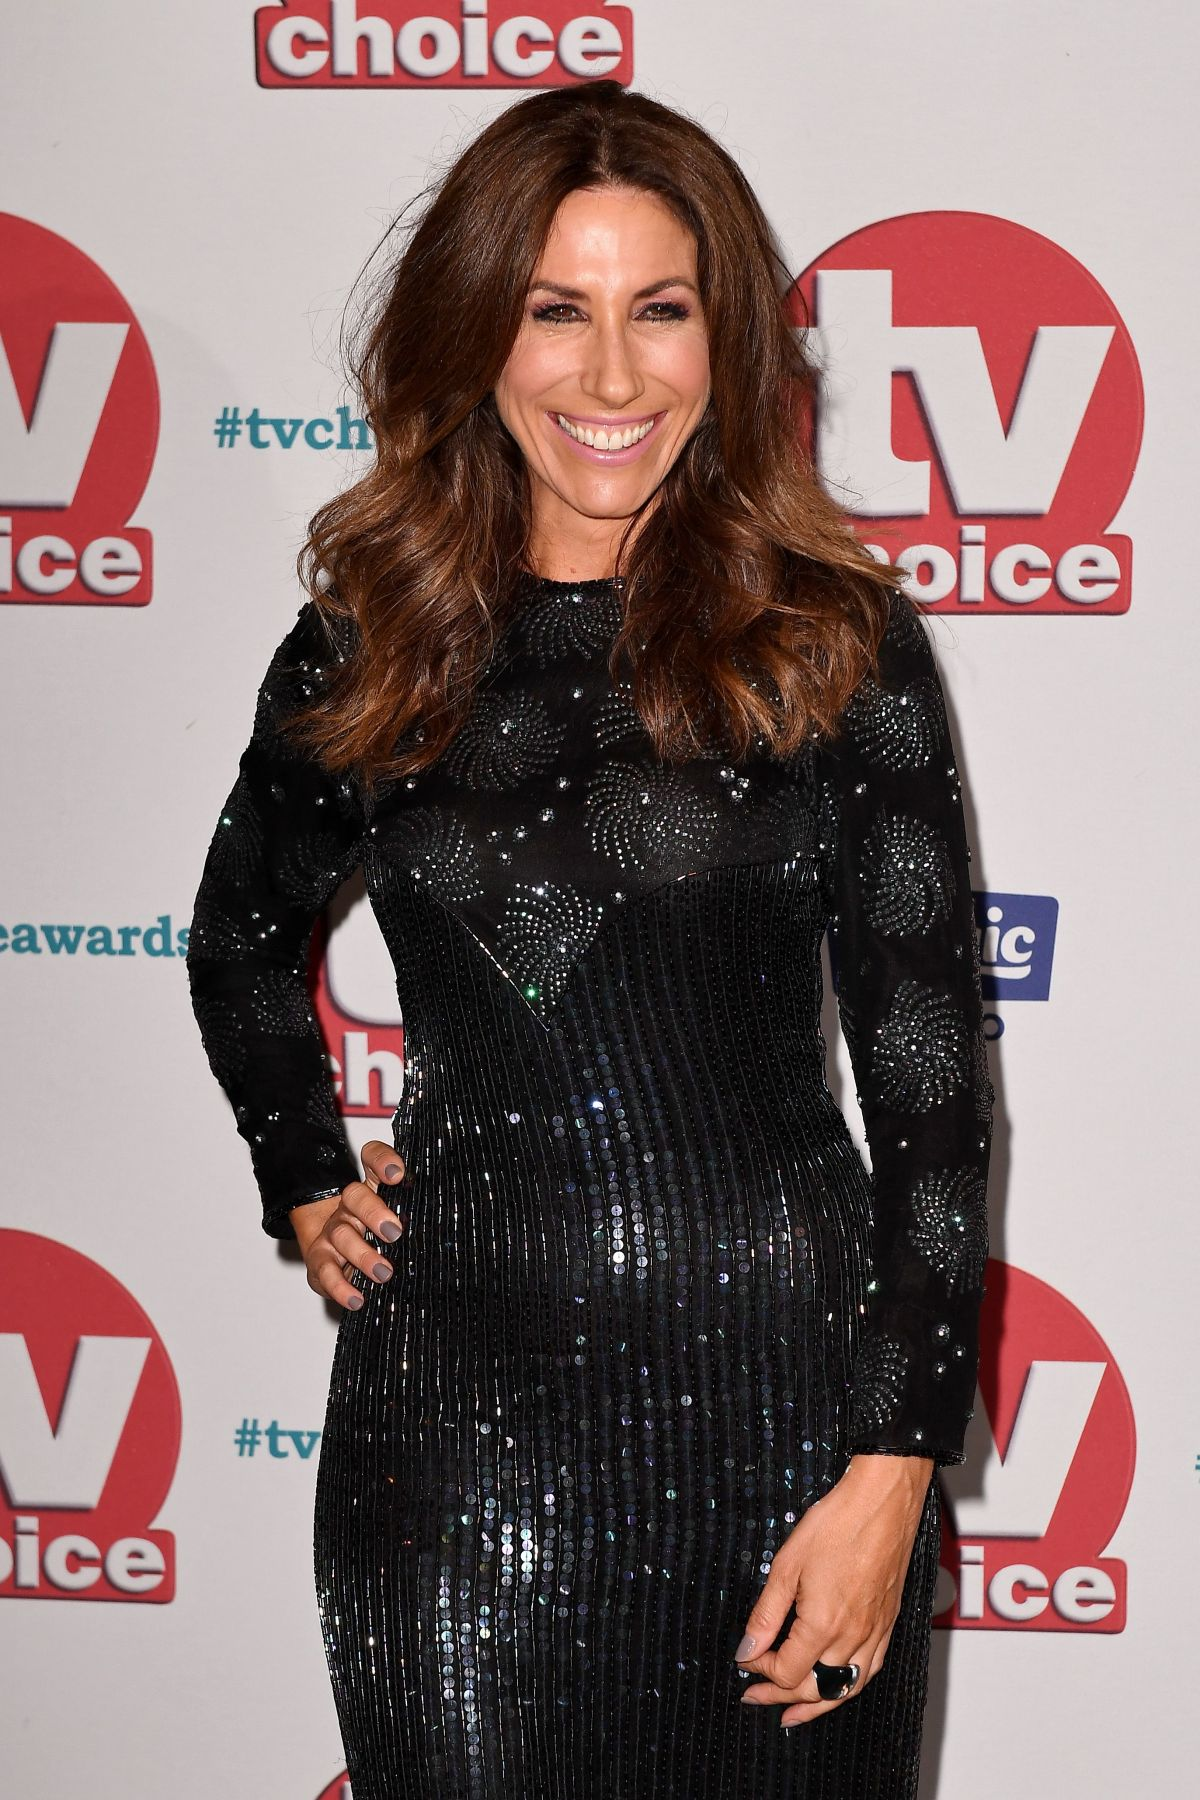 GAYNOR FAYE at TV Choice Awards in London 09/04/2017